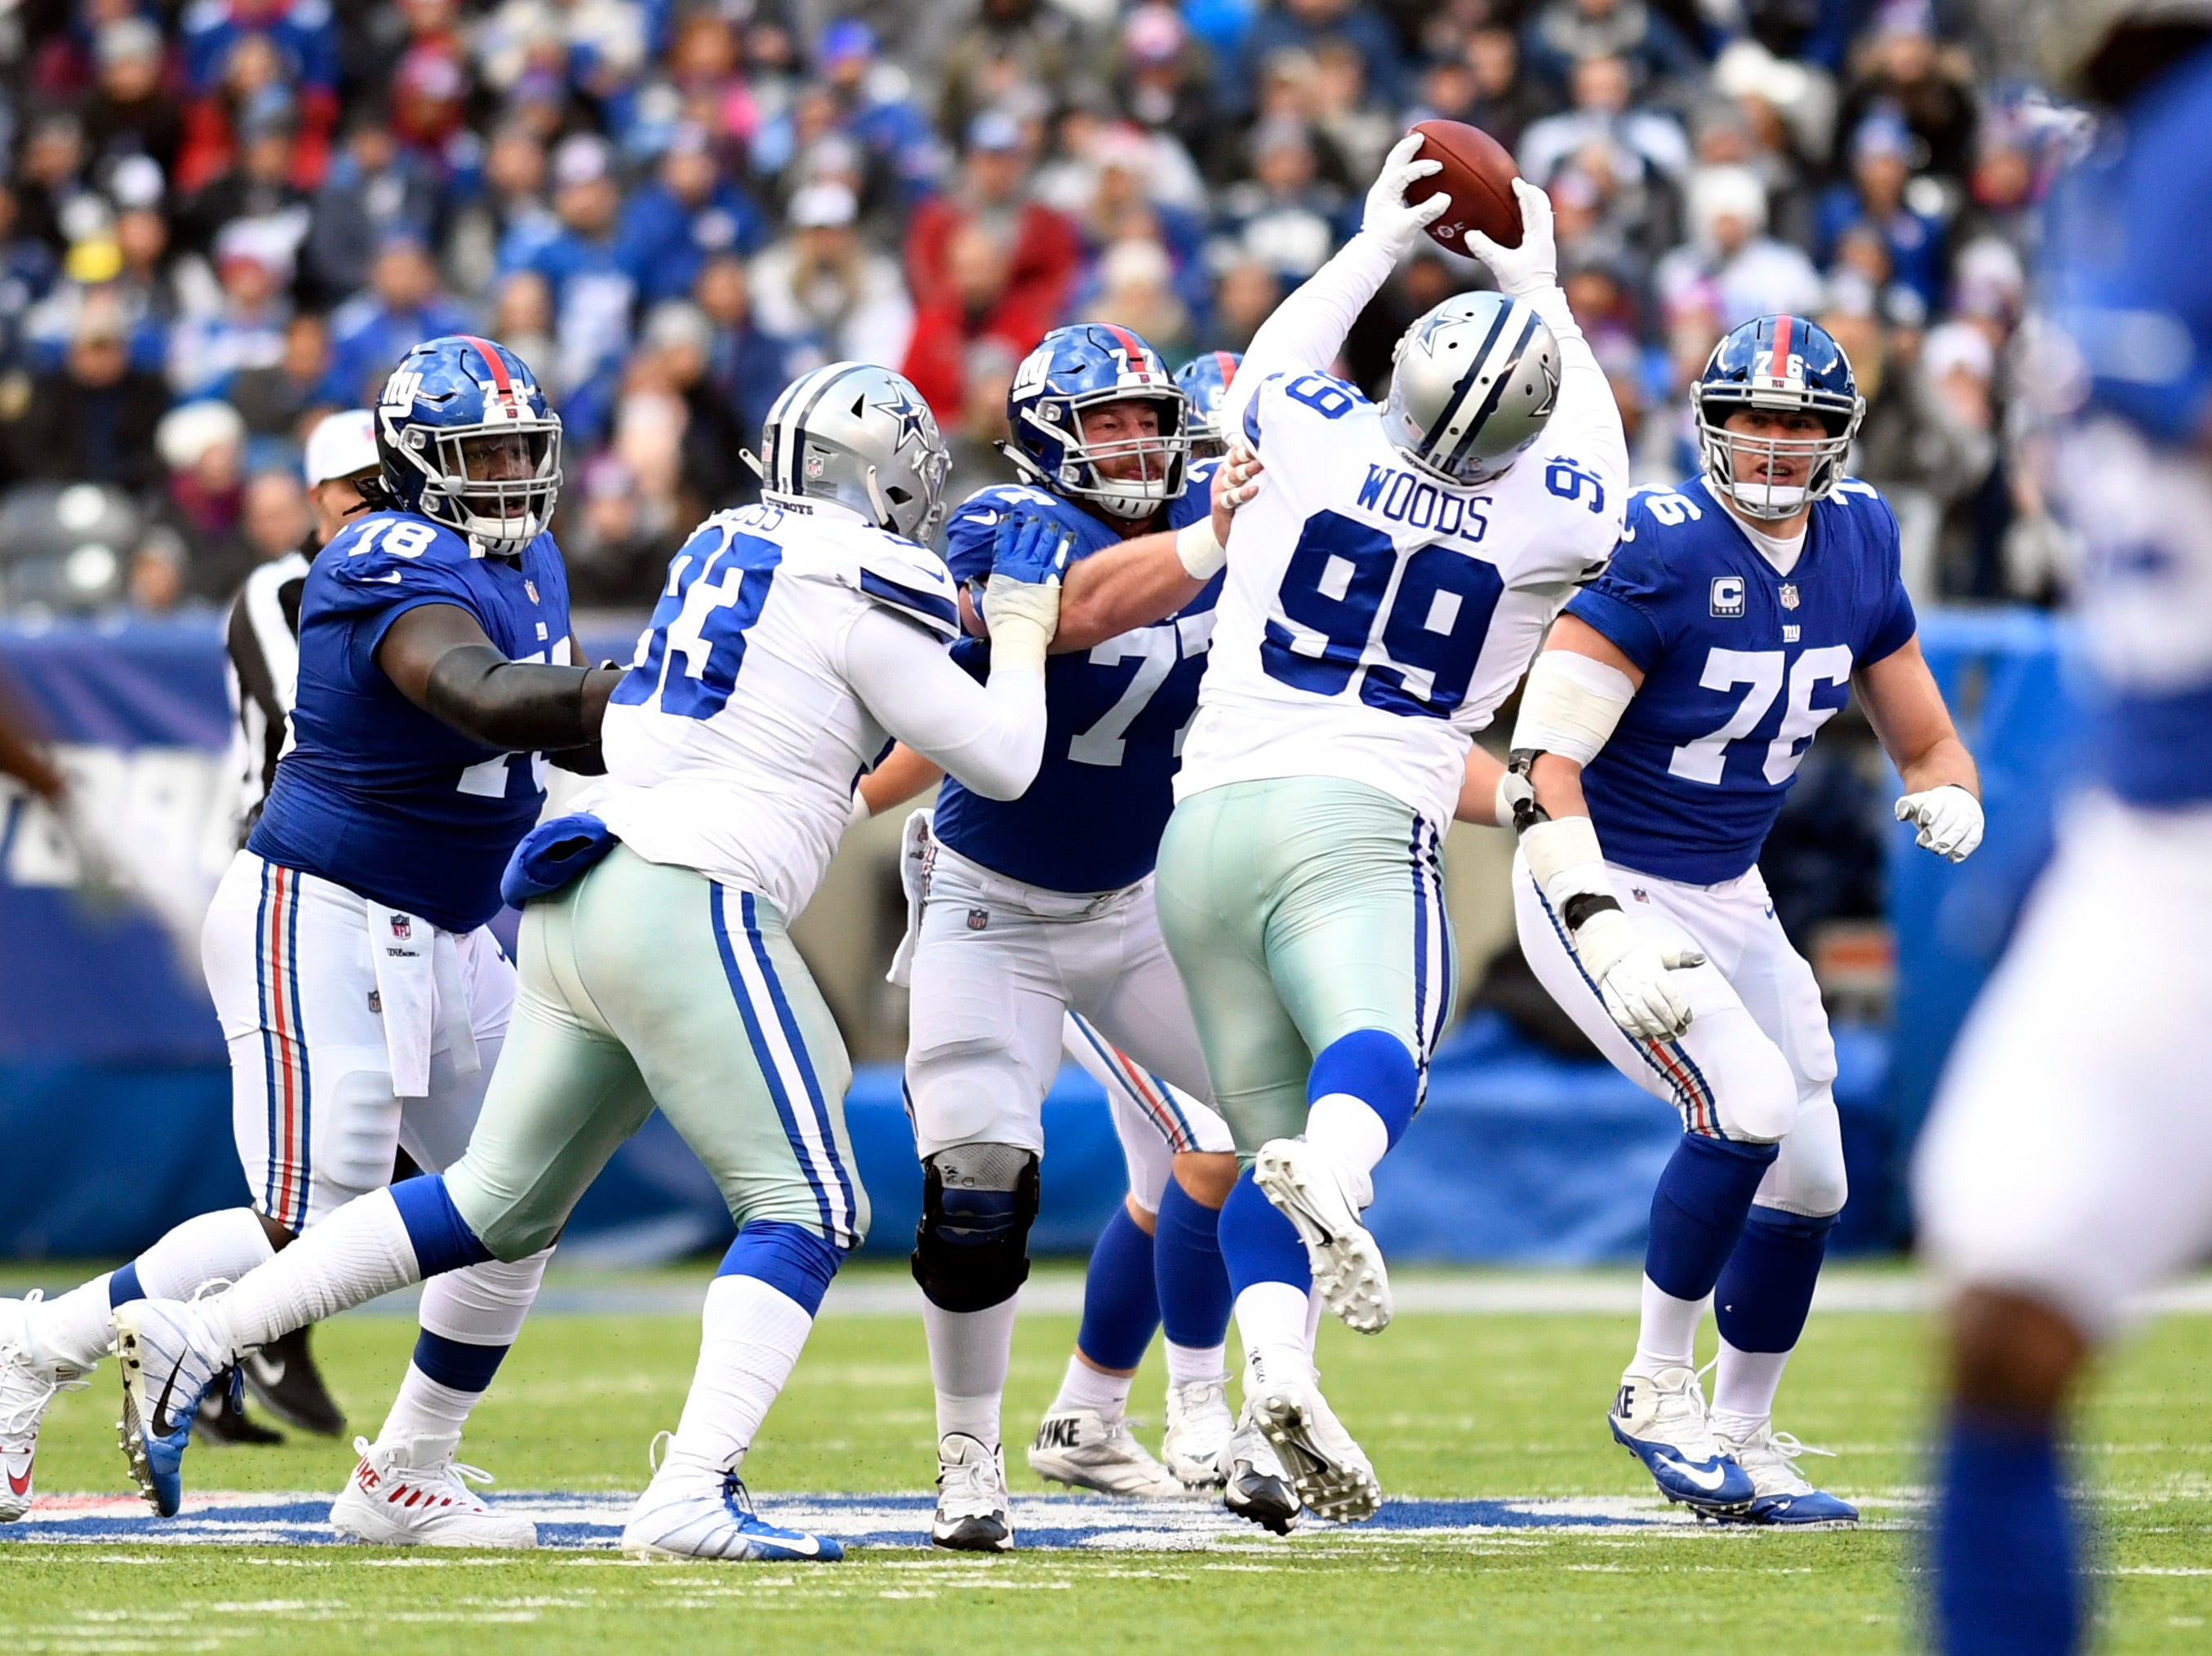 Dallas Cowboys defensive tackle Antwaun Woods (99) intercepts a pass throw by New York Giants quarterback Eli Manning (not pictured) in the first half. The New York Giants face the Dallas Cowboys in the last regular season game on Sunday, Dec. 30, 2018, in East Rutherford.